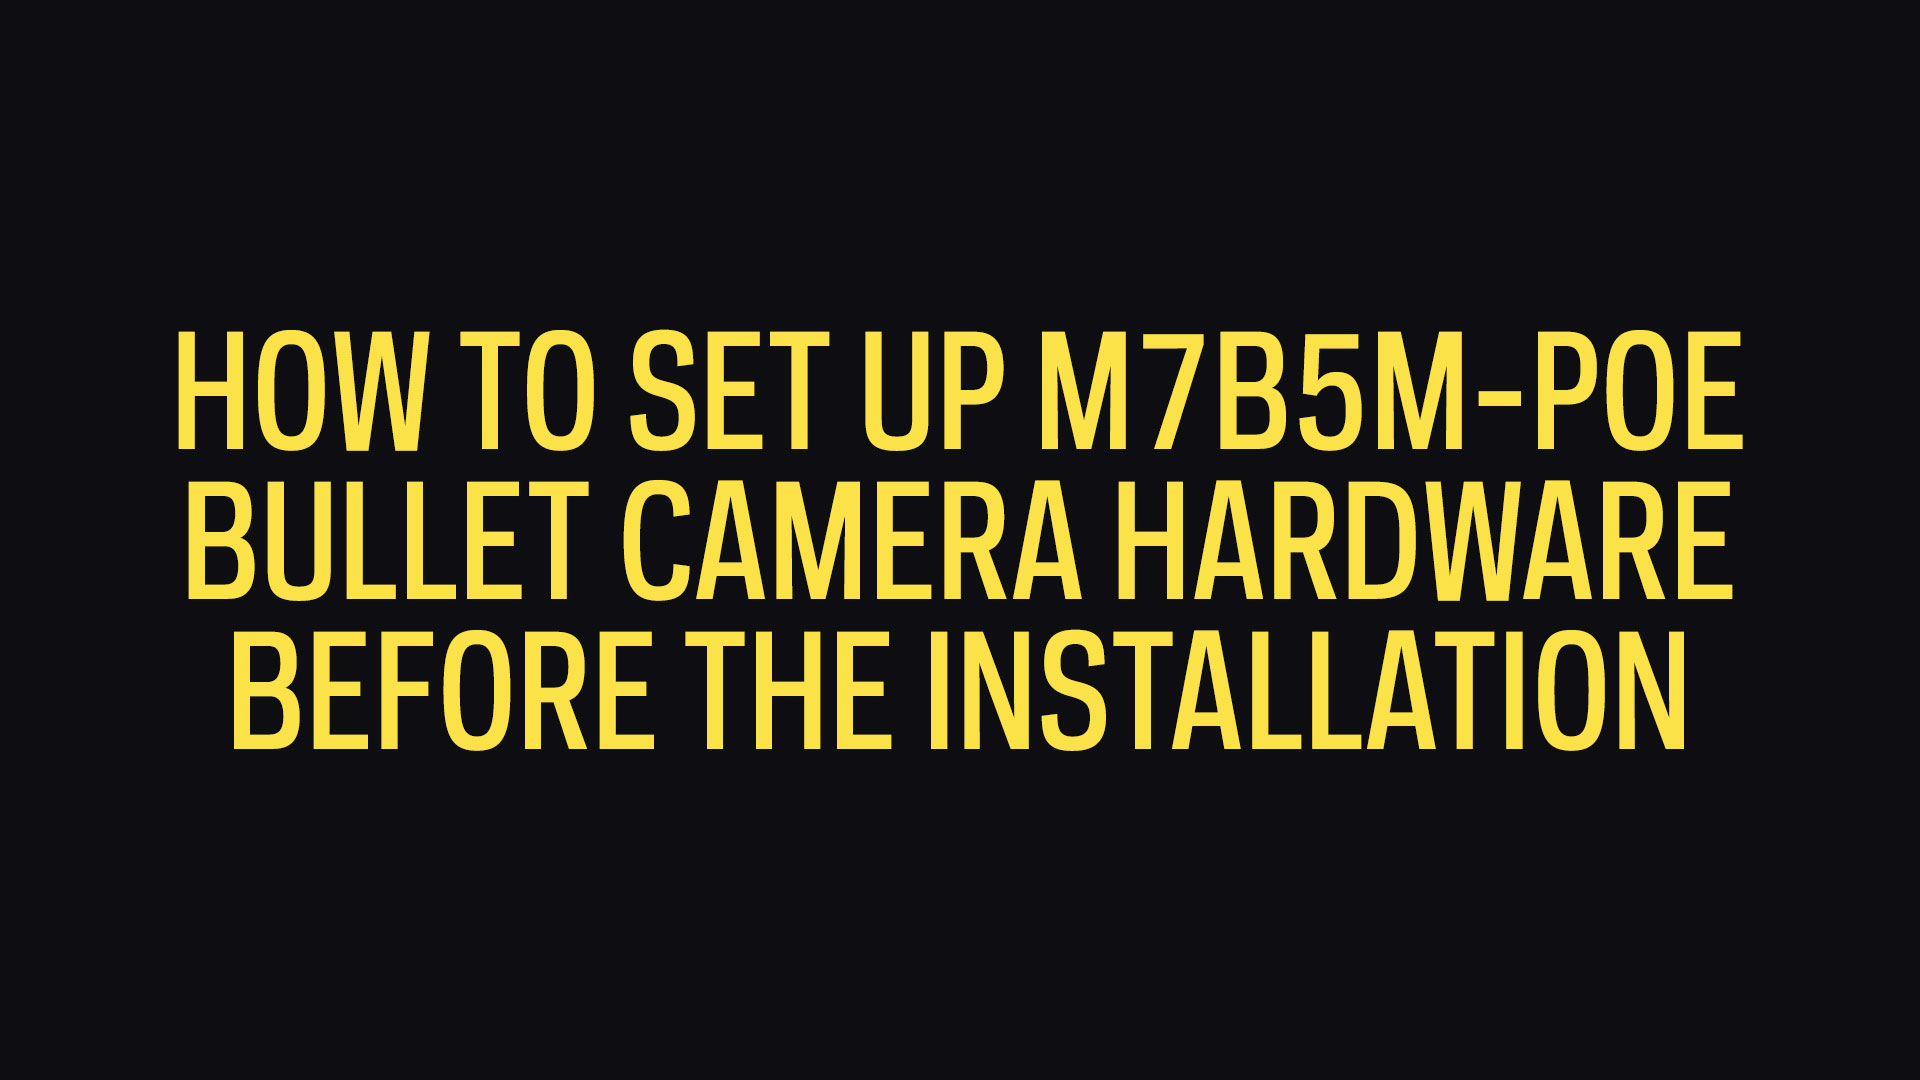 How To Set Up M7B5M-POE 5MP Bullet Camera Hardware Before The Installation